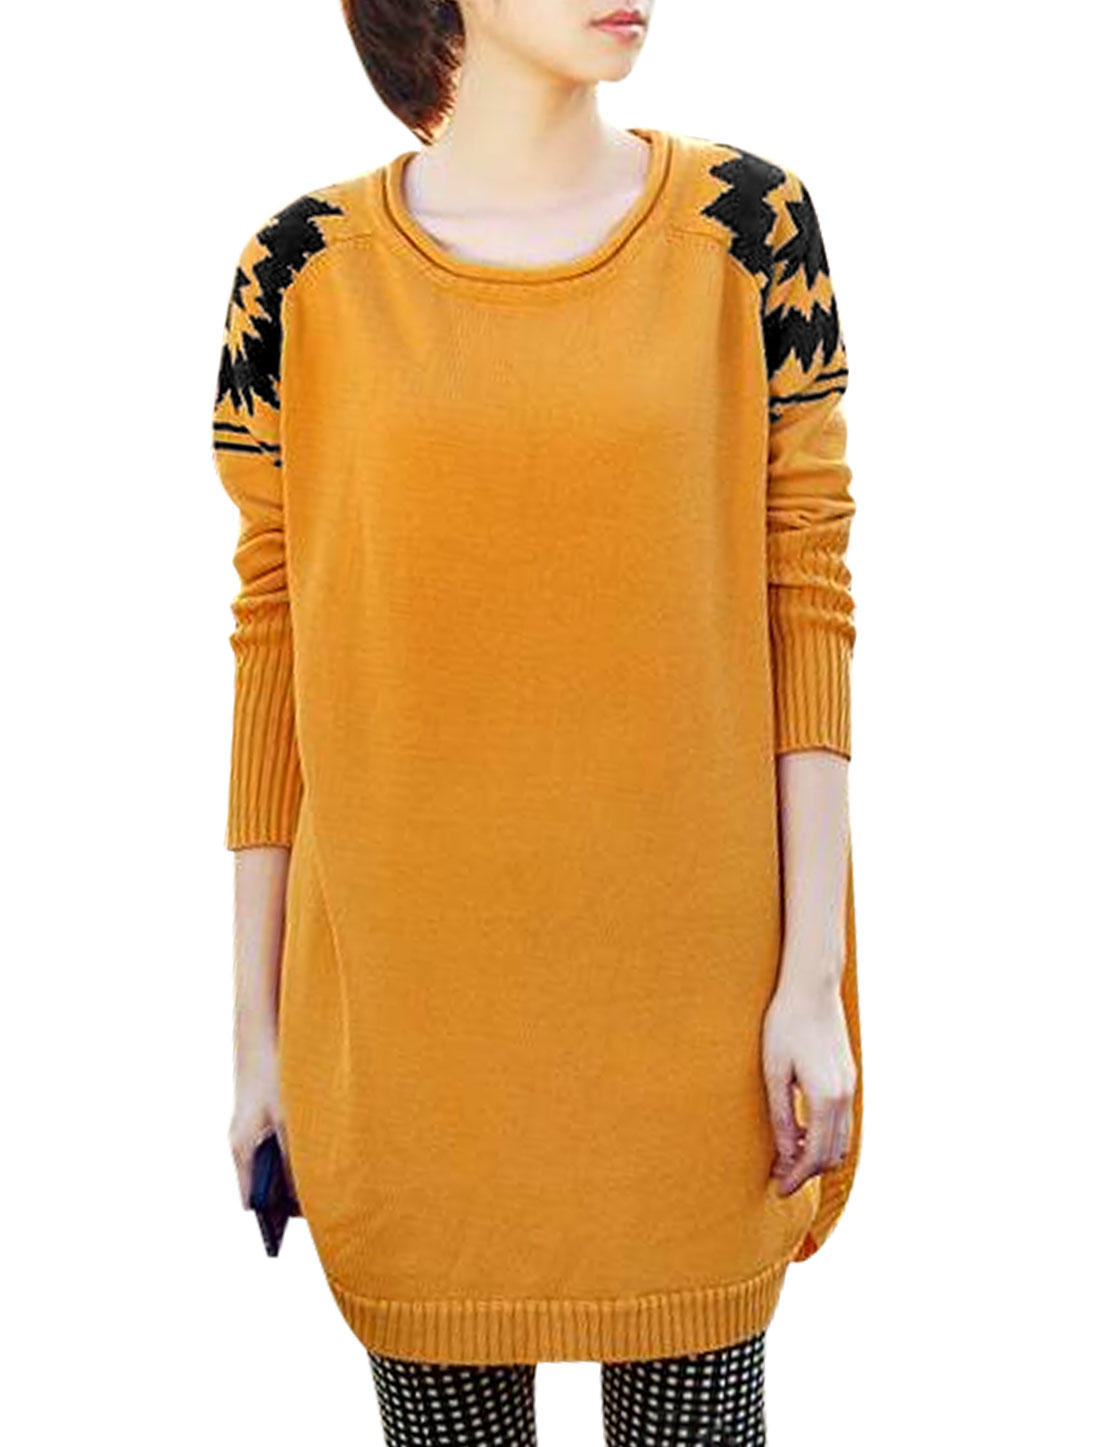 Ladies Yellow Round Neck Raglan Sleeves Pullover Casaul Sweater XS